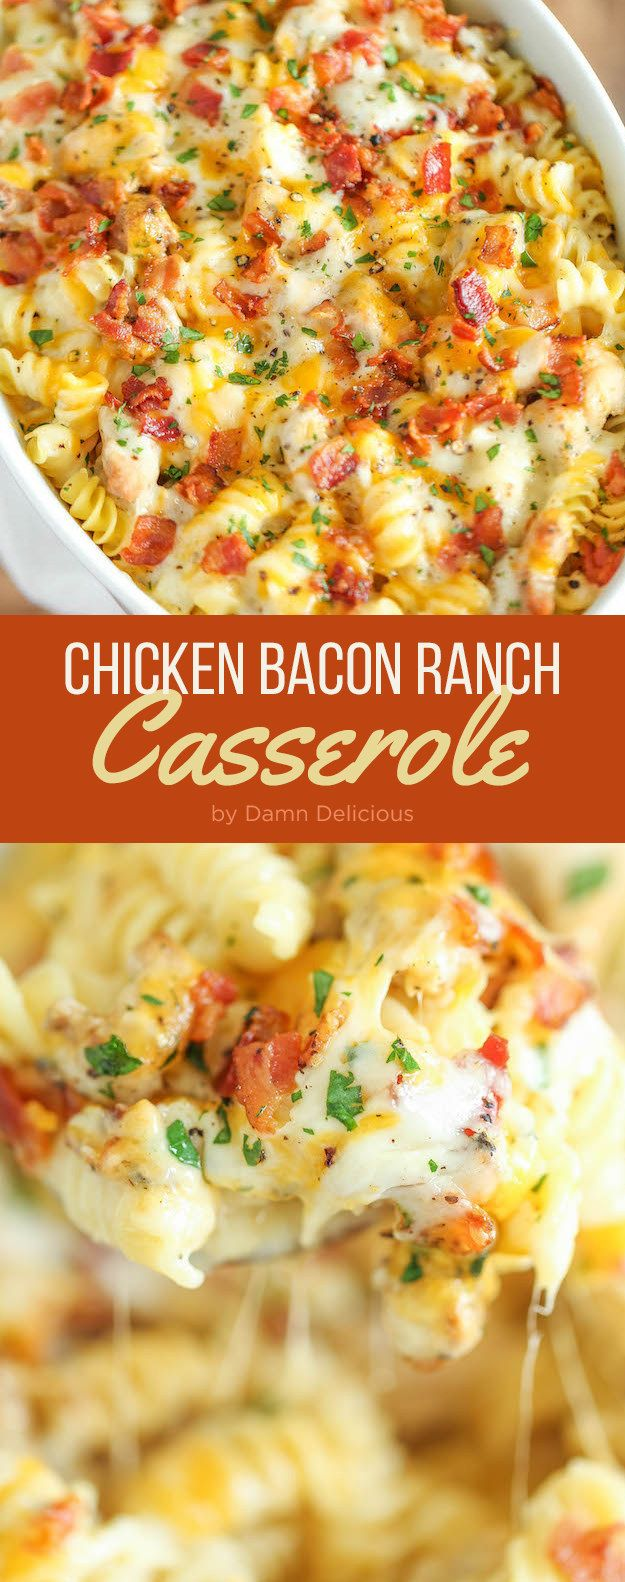 21 Easy Chicken Dinners That Are Tasty AF #easydinners